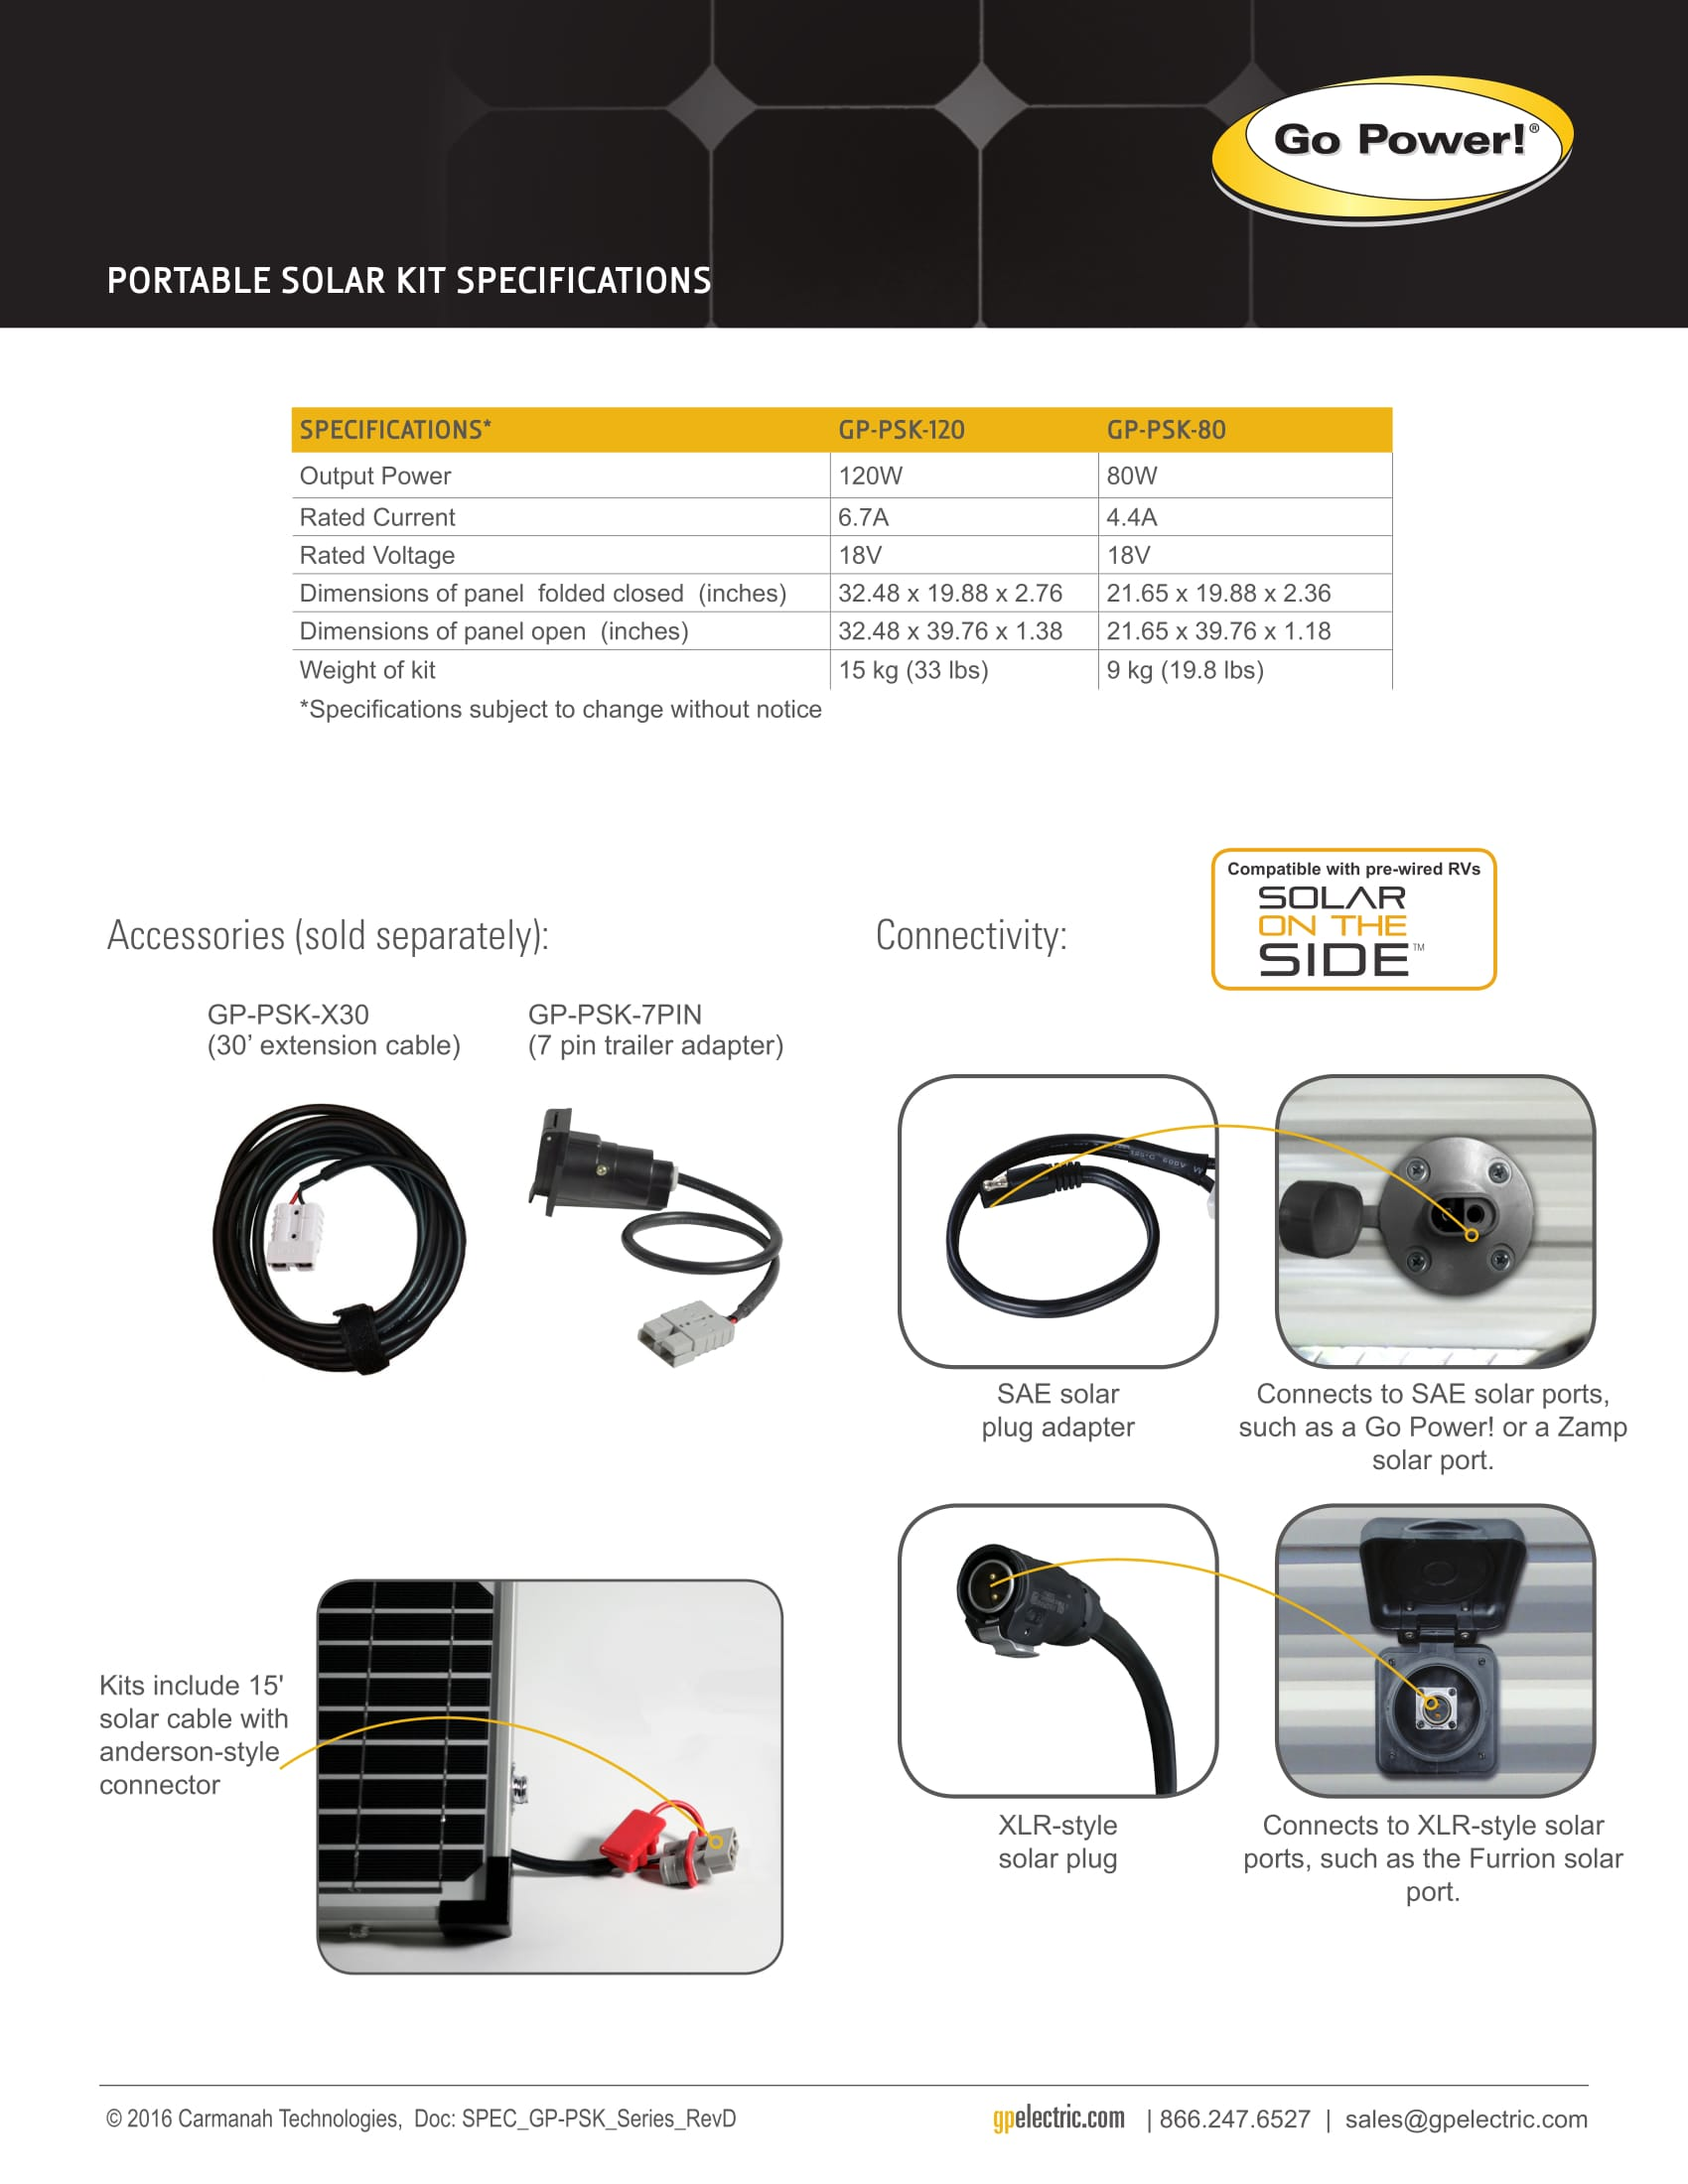 Go Power Portable Solar Kits 120 Watts Home Supply Inverter Available In 80 Powers Line Of Folding Modules Offer Some The Most Versatile And Convenient Battery Charging Options For Those Who Dont